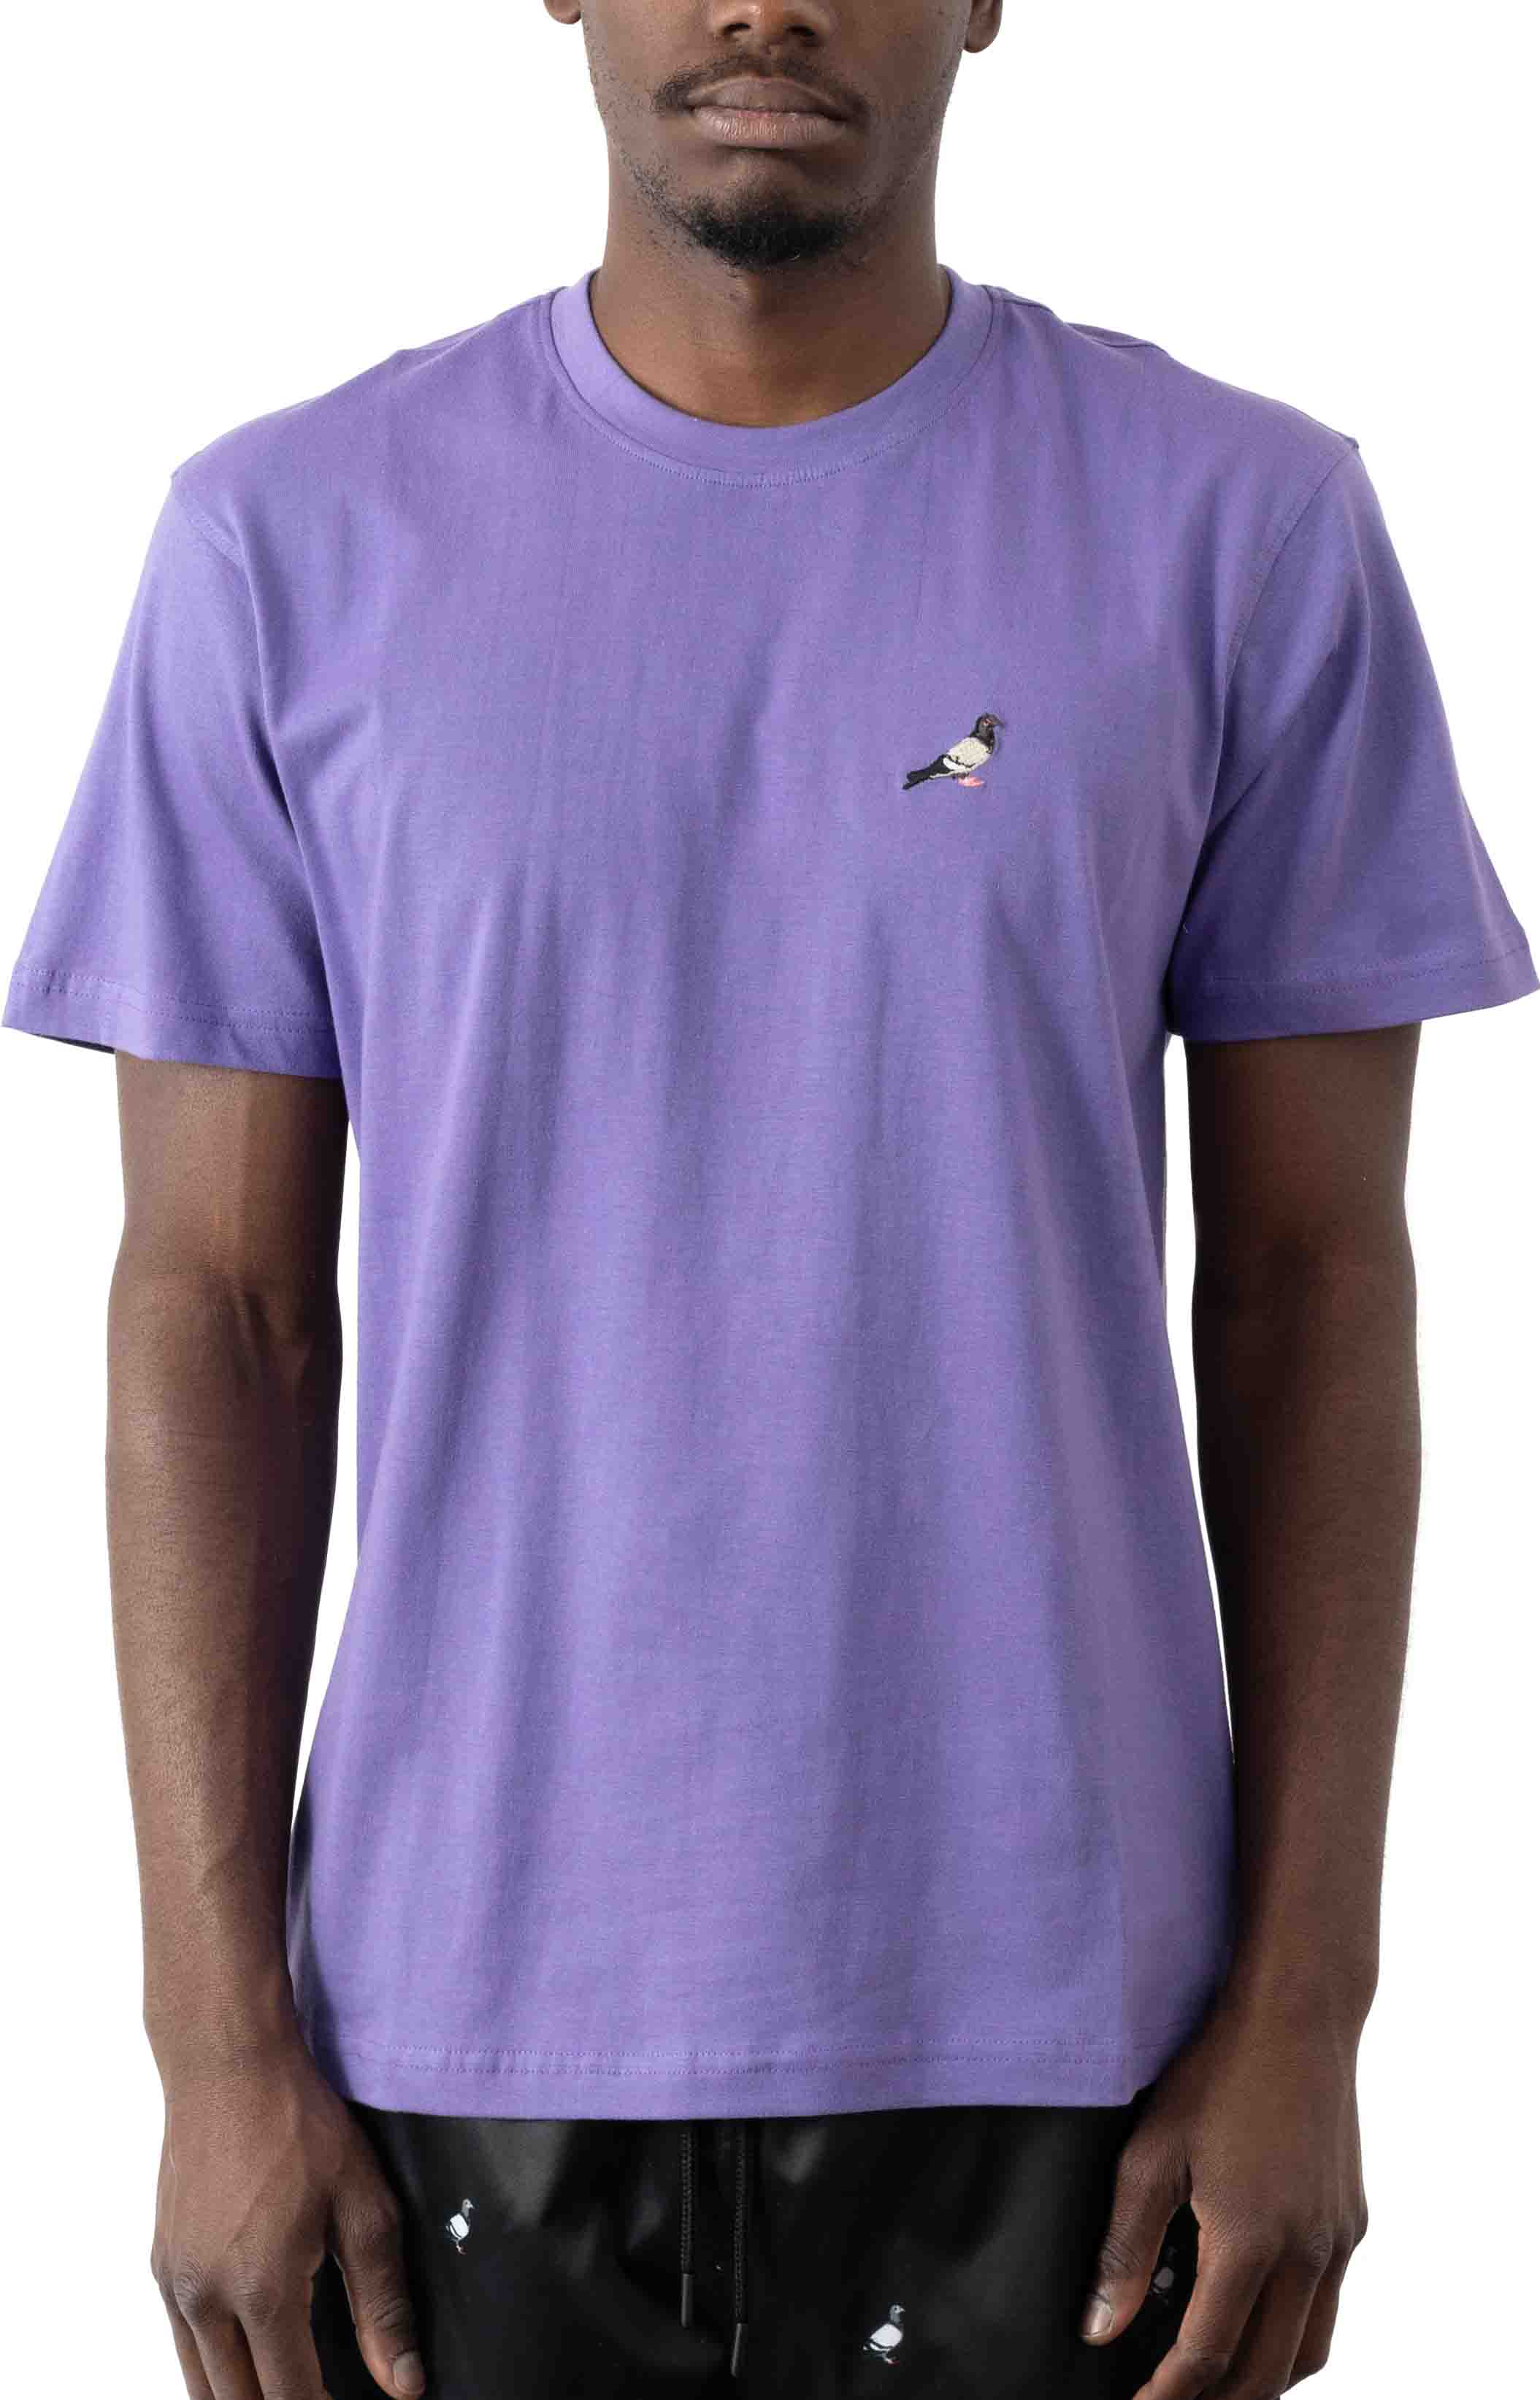 Embroidered Pigeon T-Shirt - Violet